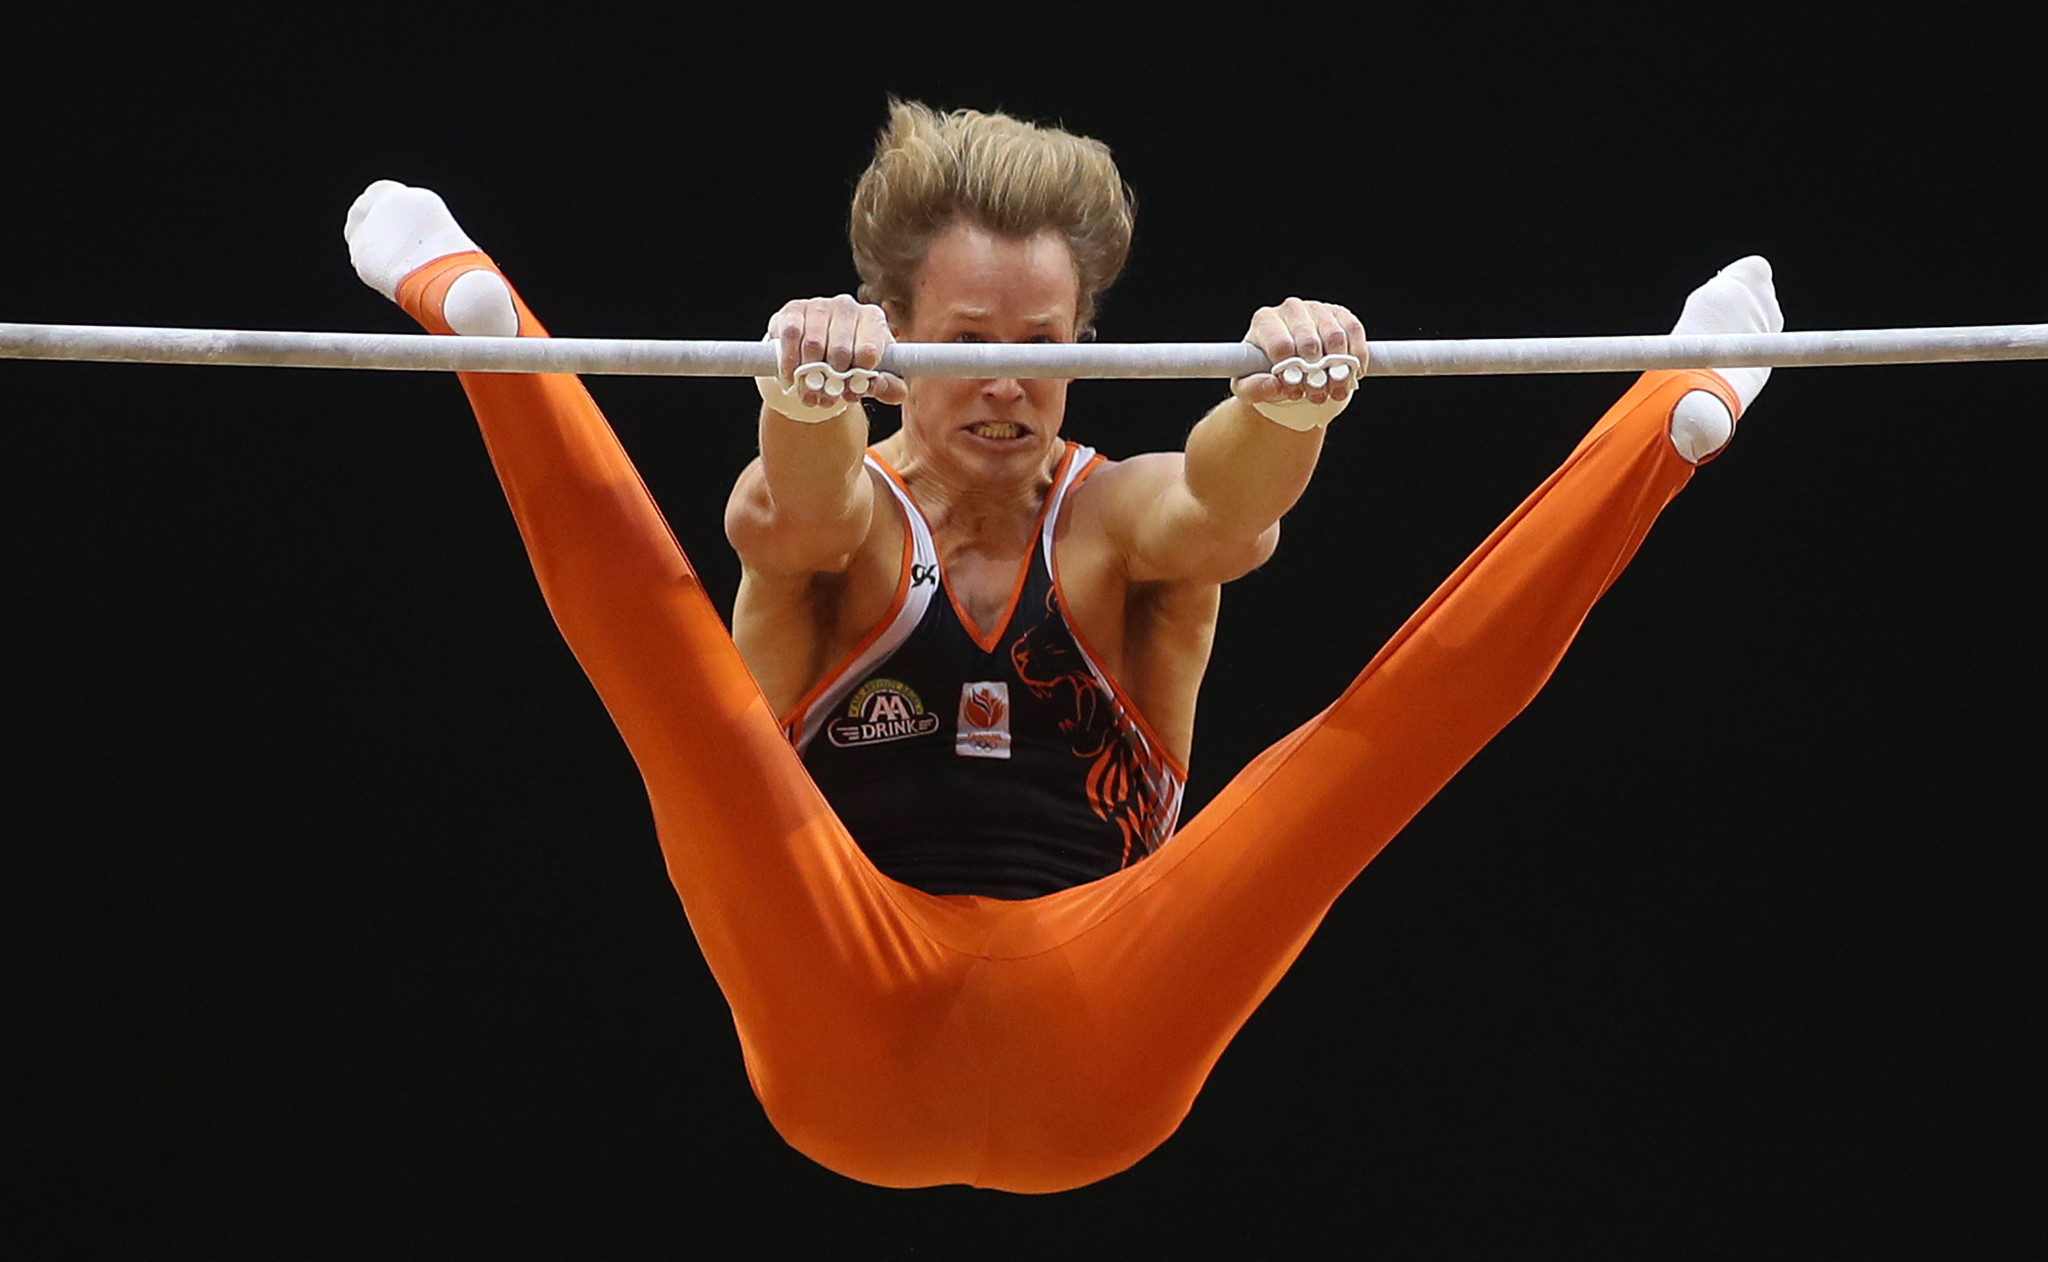 Reigning world high bar champion Epke Zonderland squeezed through to the final in eighth place ©Getty Images